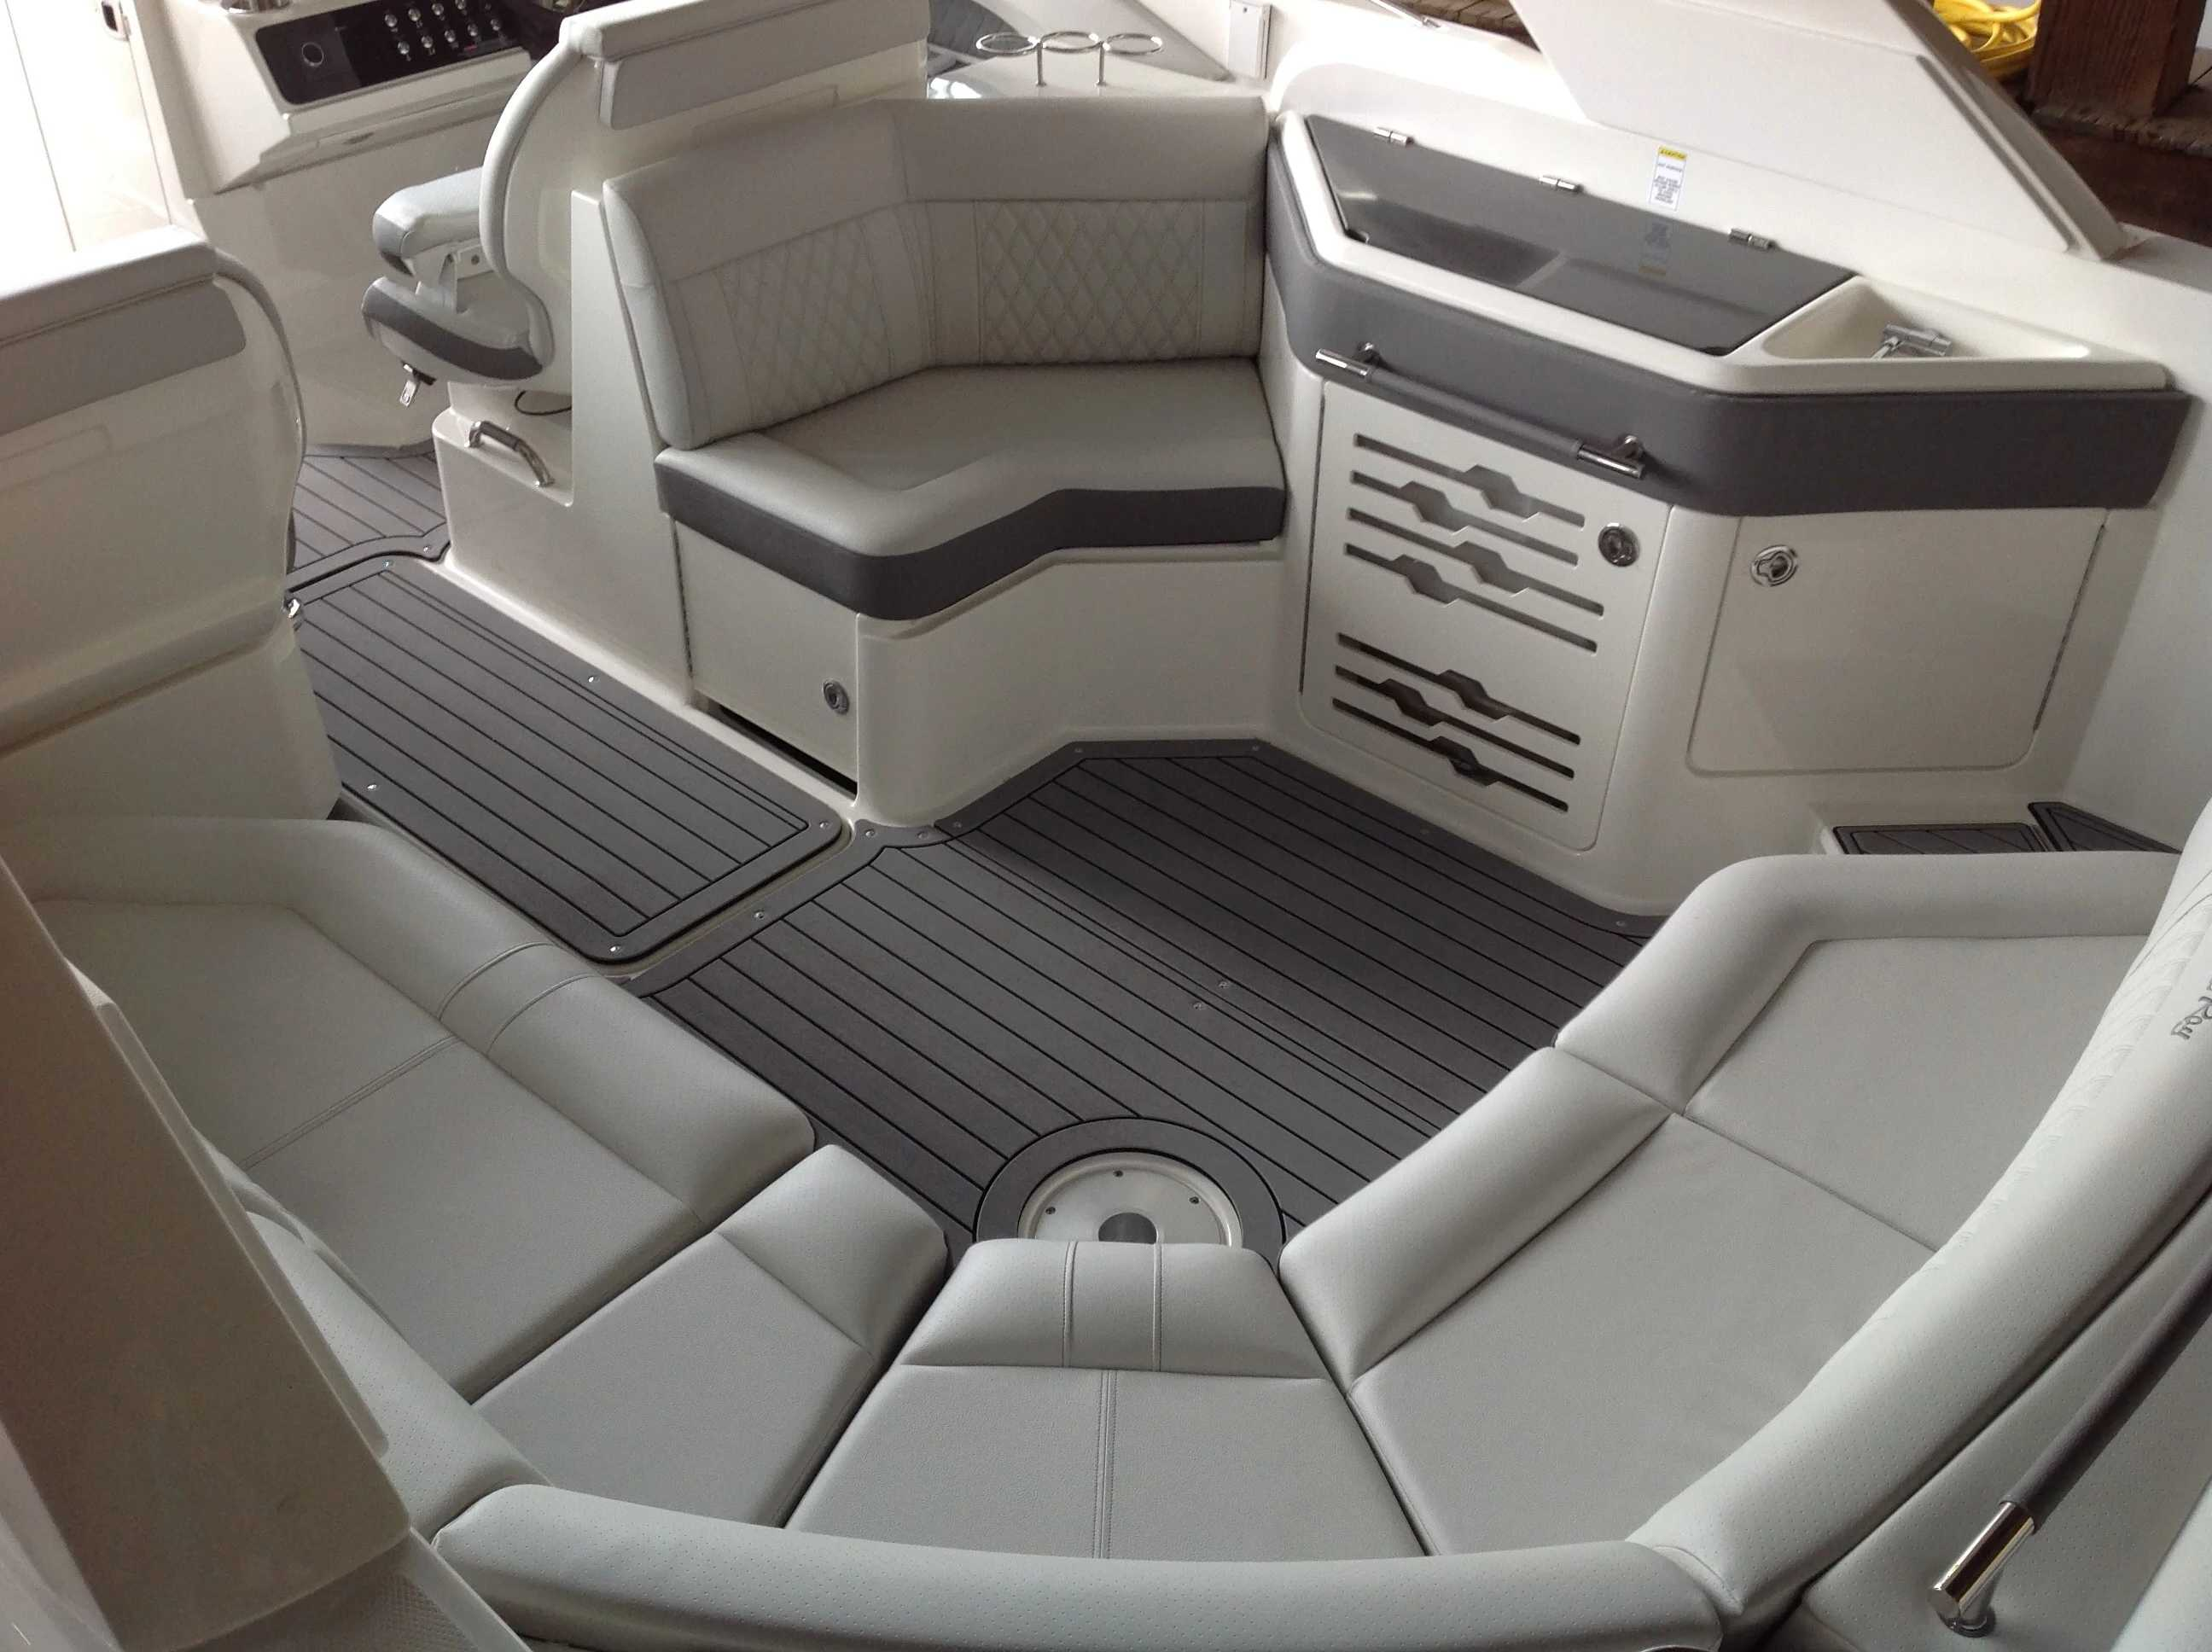 2021 Sea Ray boat for sale, model of the boat is 310 SLX & Image # 17 of 20